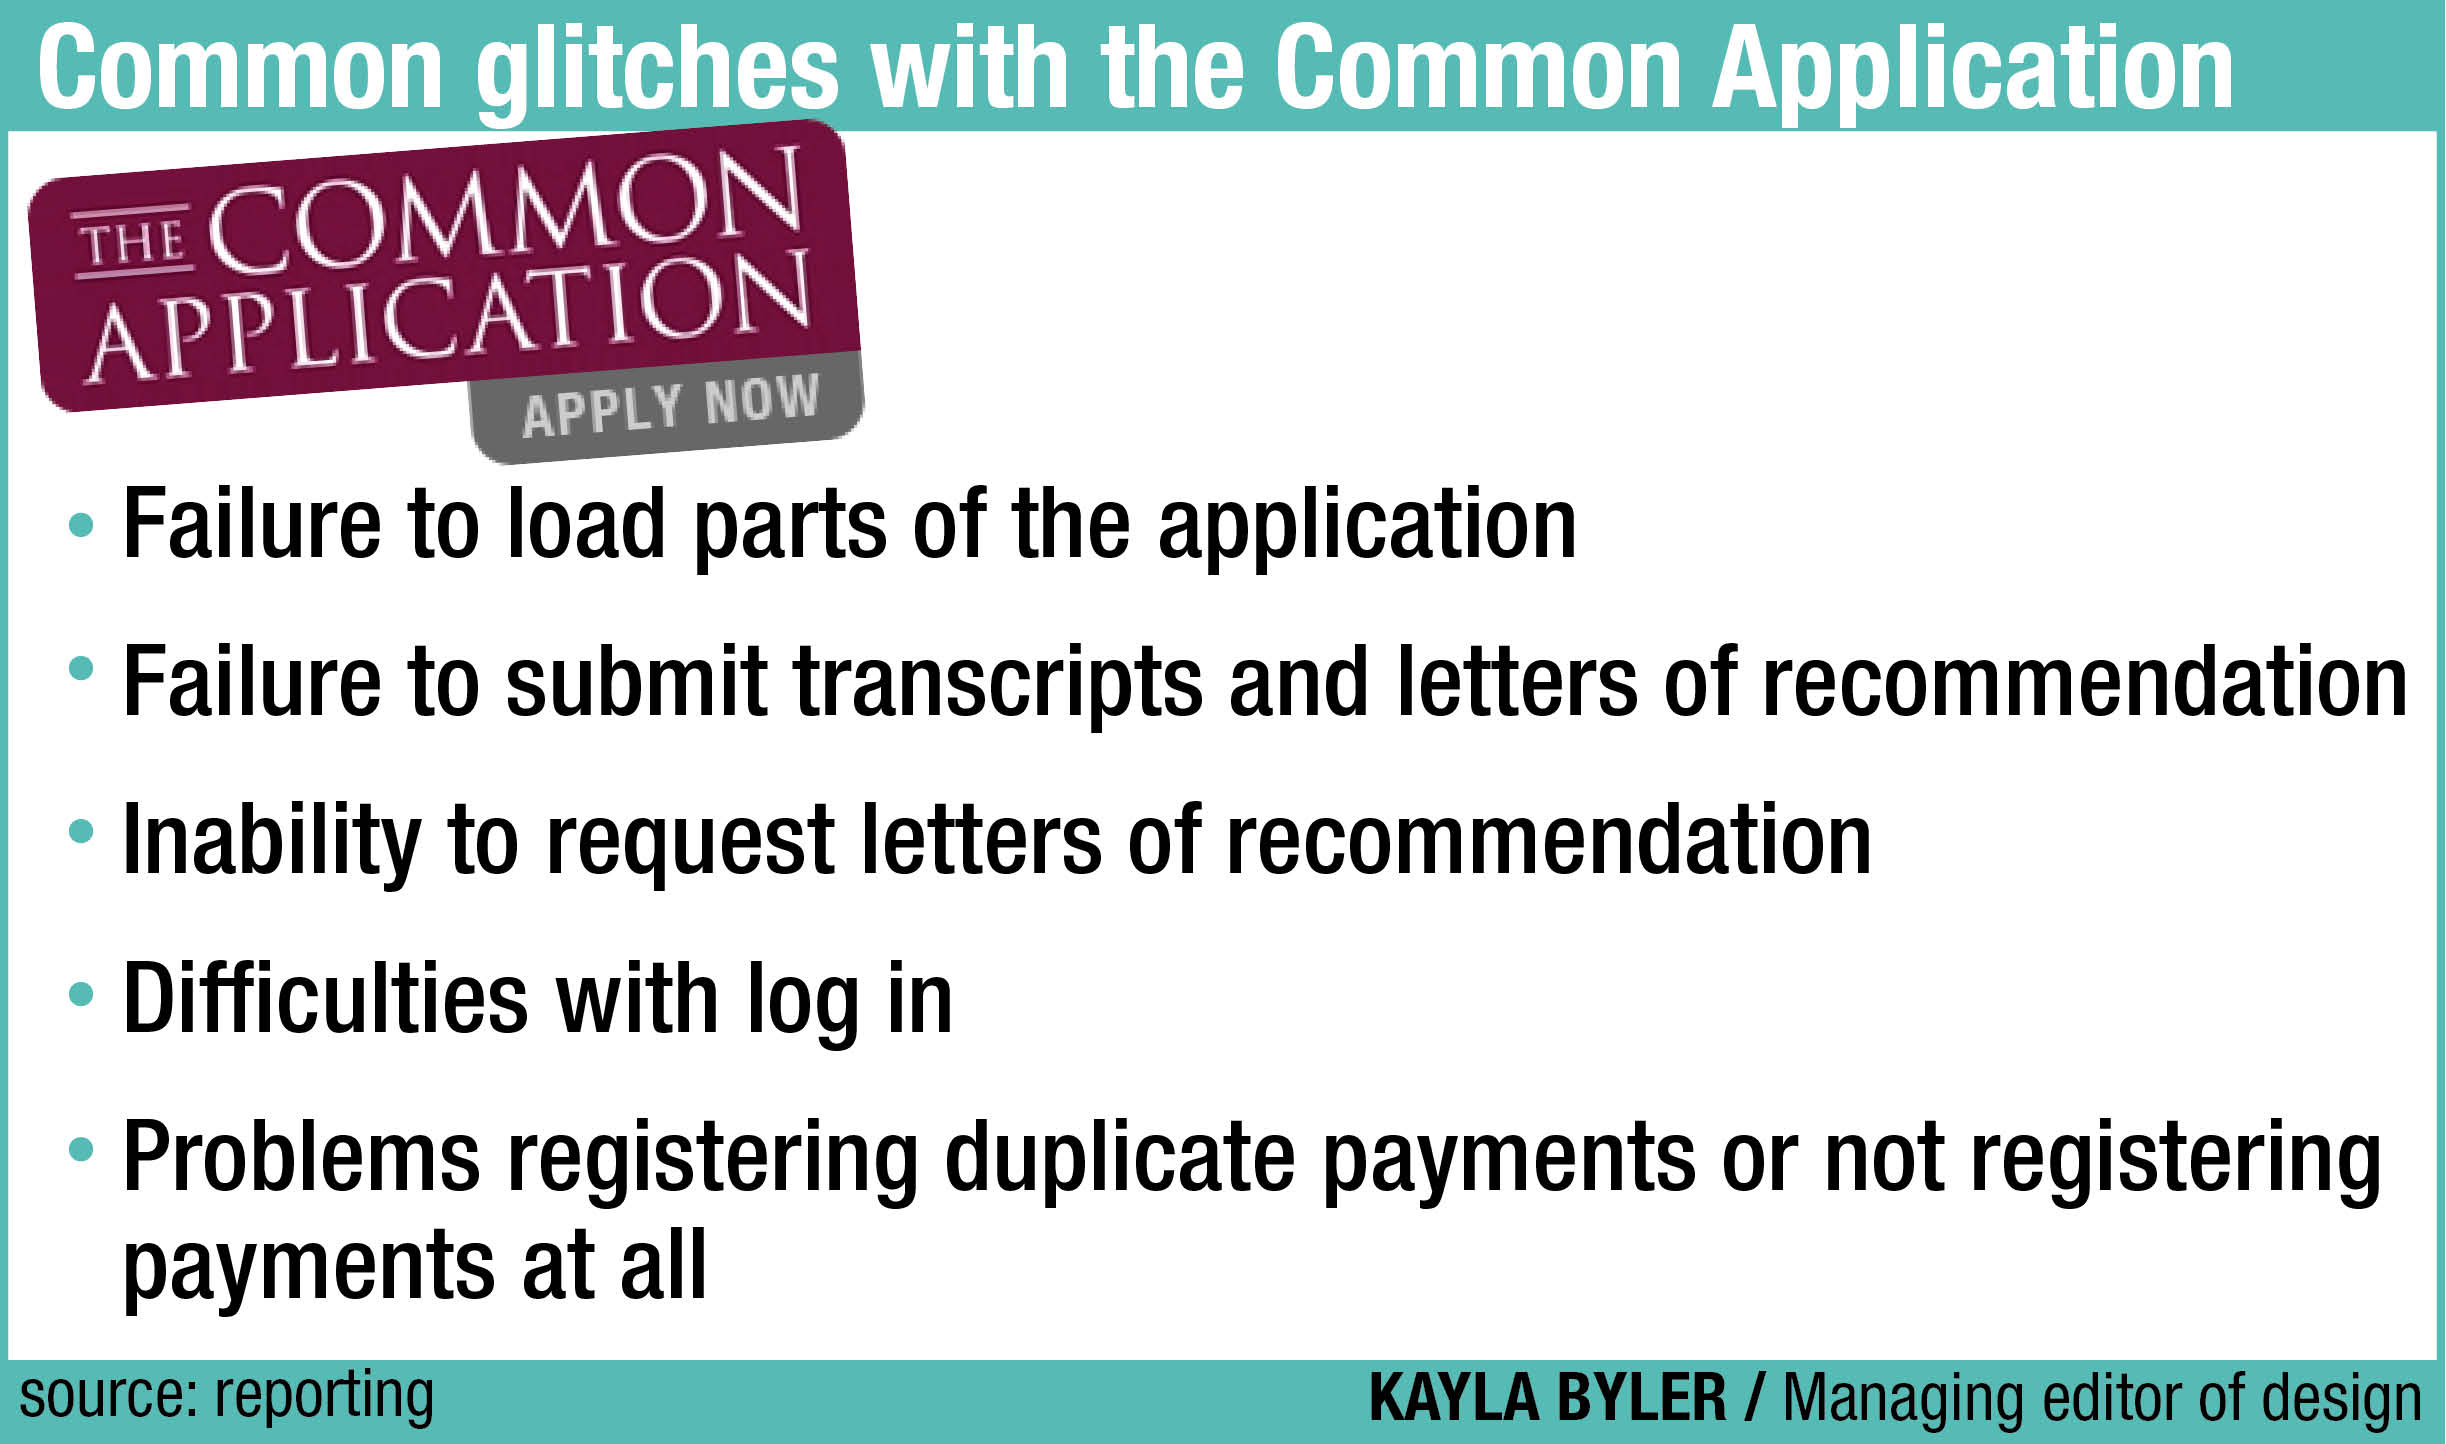 common app glitches cause issues for some university